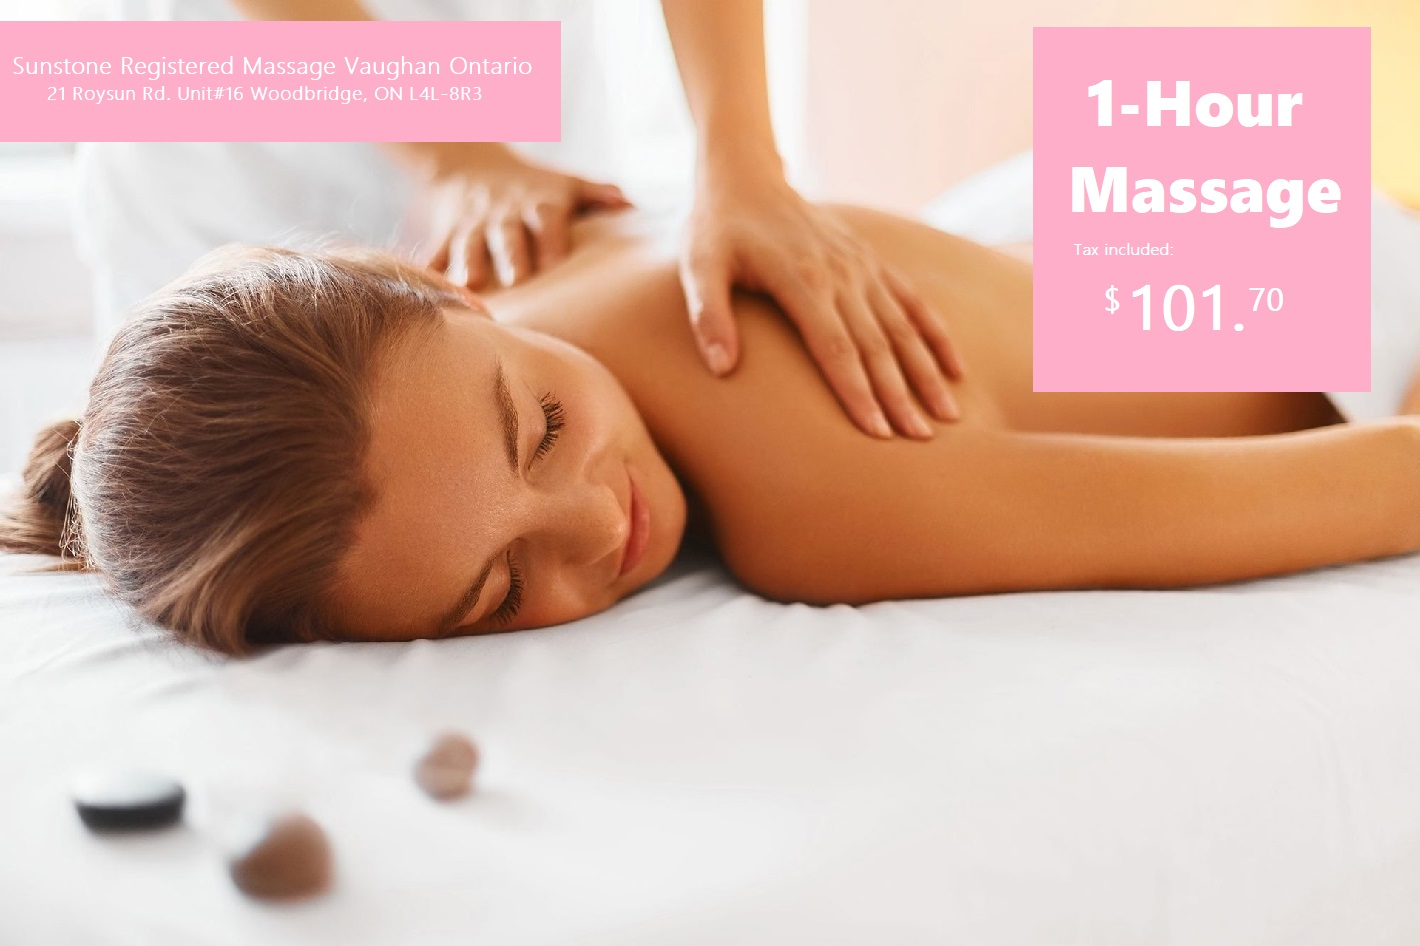 Sunstone Registered Massage 1 Hour Massage Home Vaughan Ontario